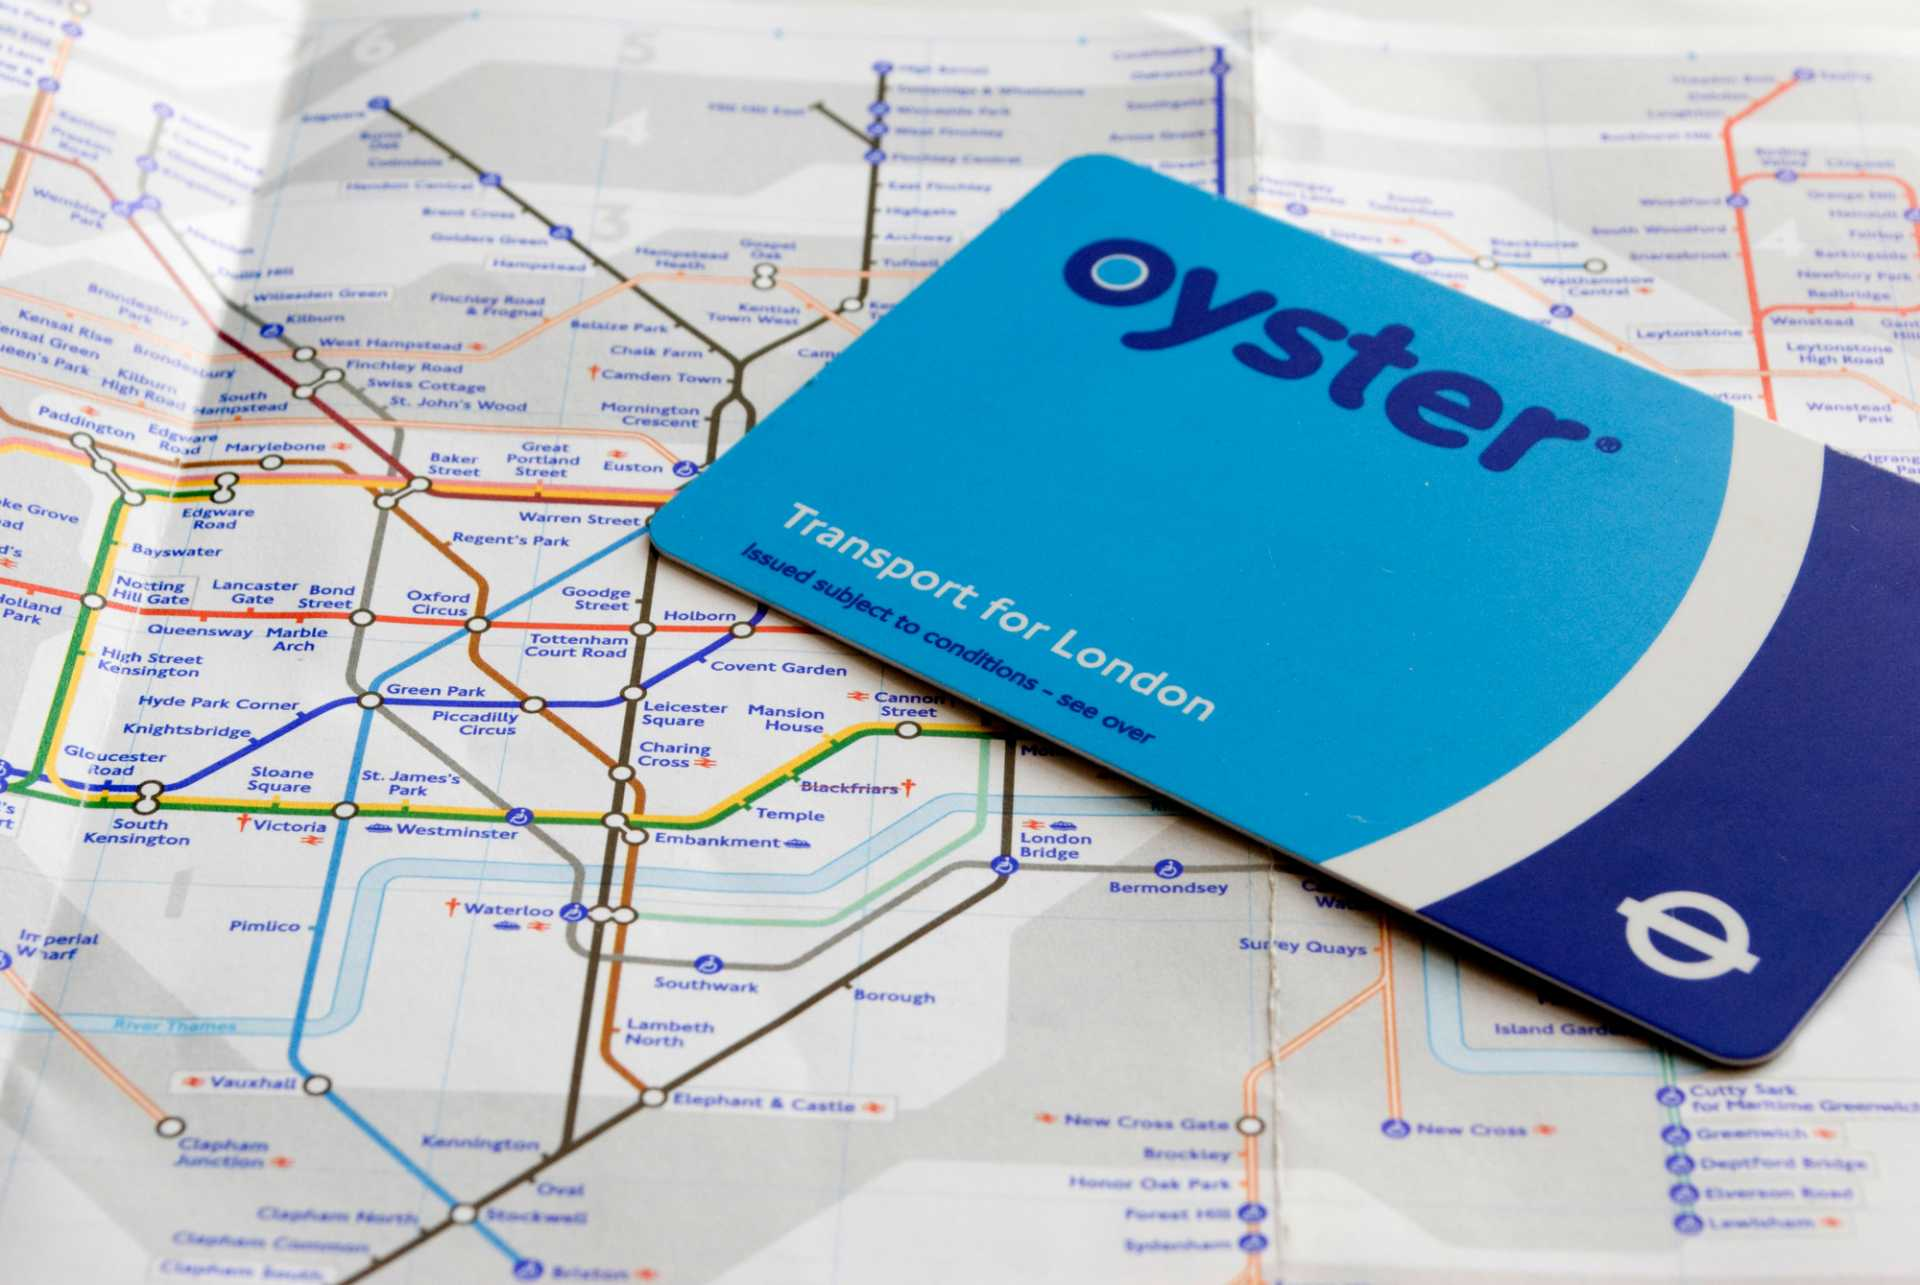 The london oyster card, the cheap way to pay for transport in london. Uk Smart Card Manufacturer Seals New 2 2m Oyster Card Deal